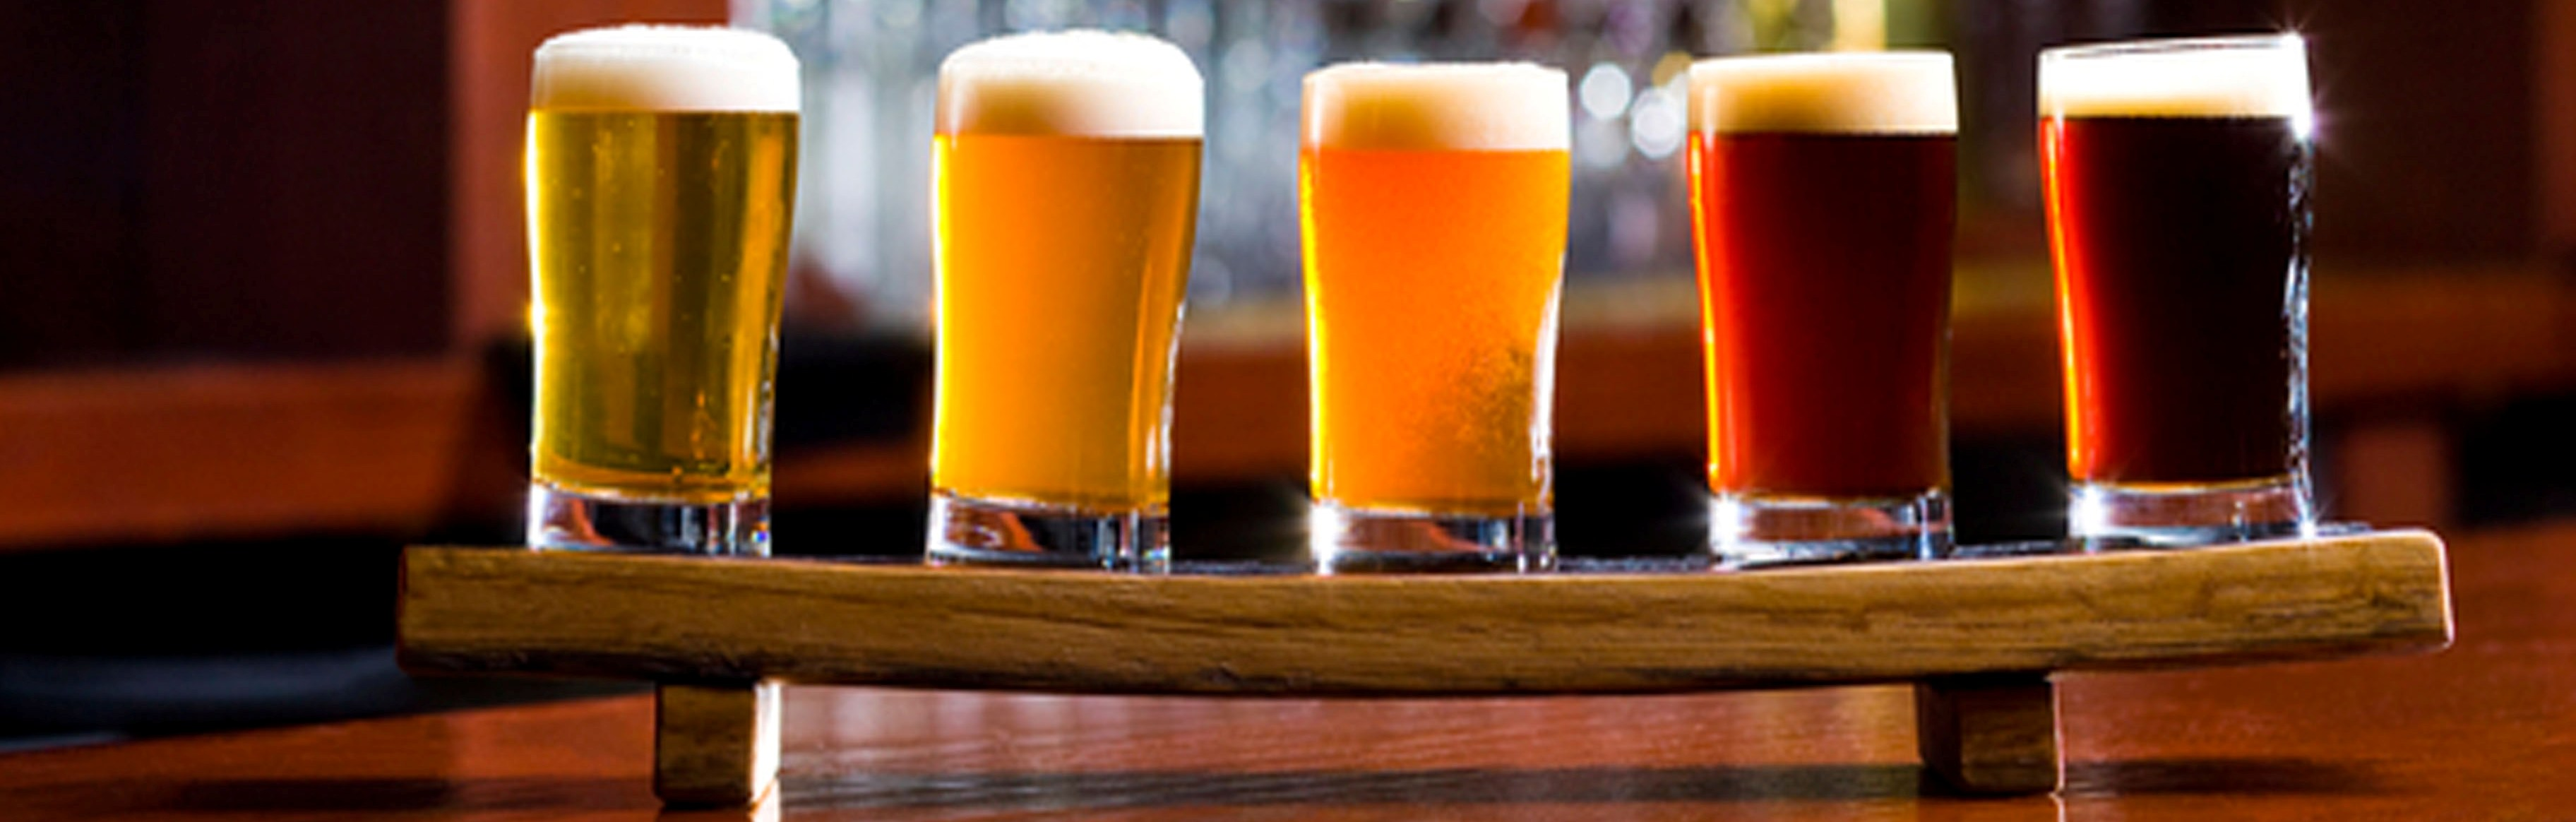 Craft beer explodes onto market vinsight for How to craft beer